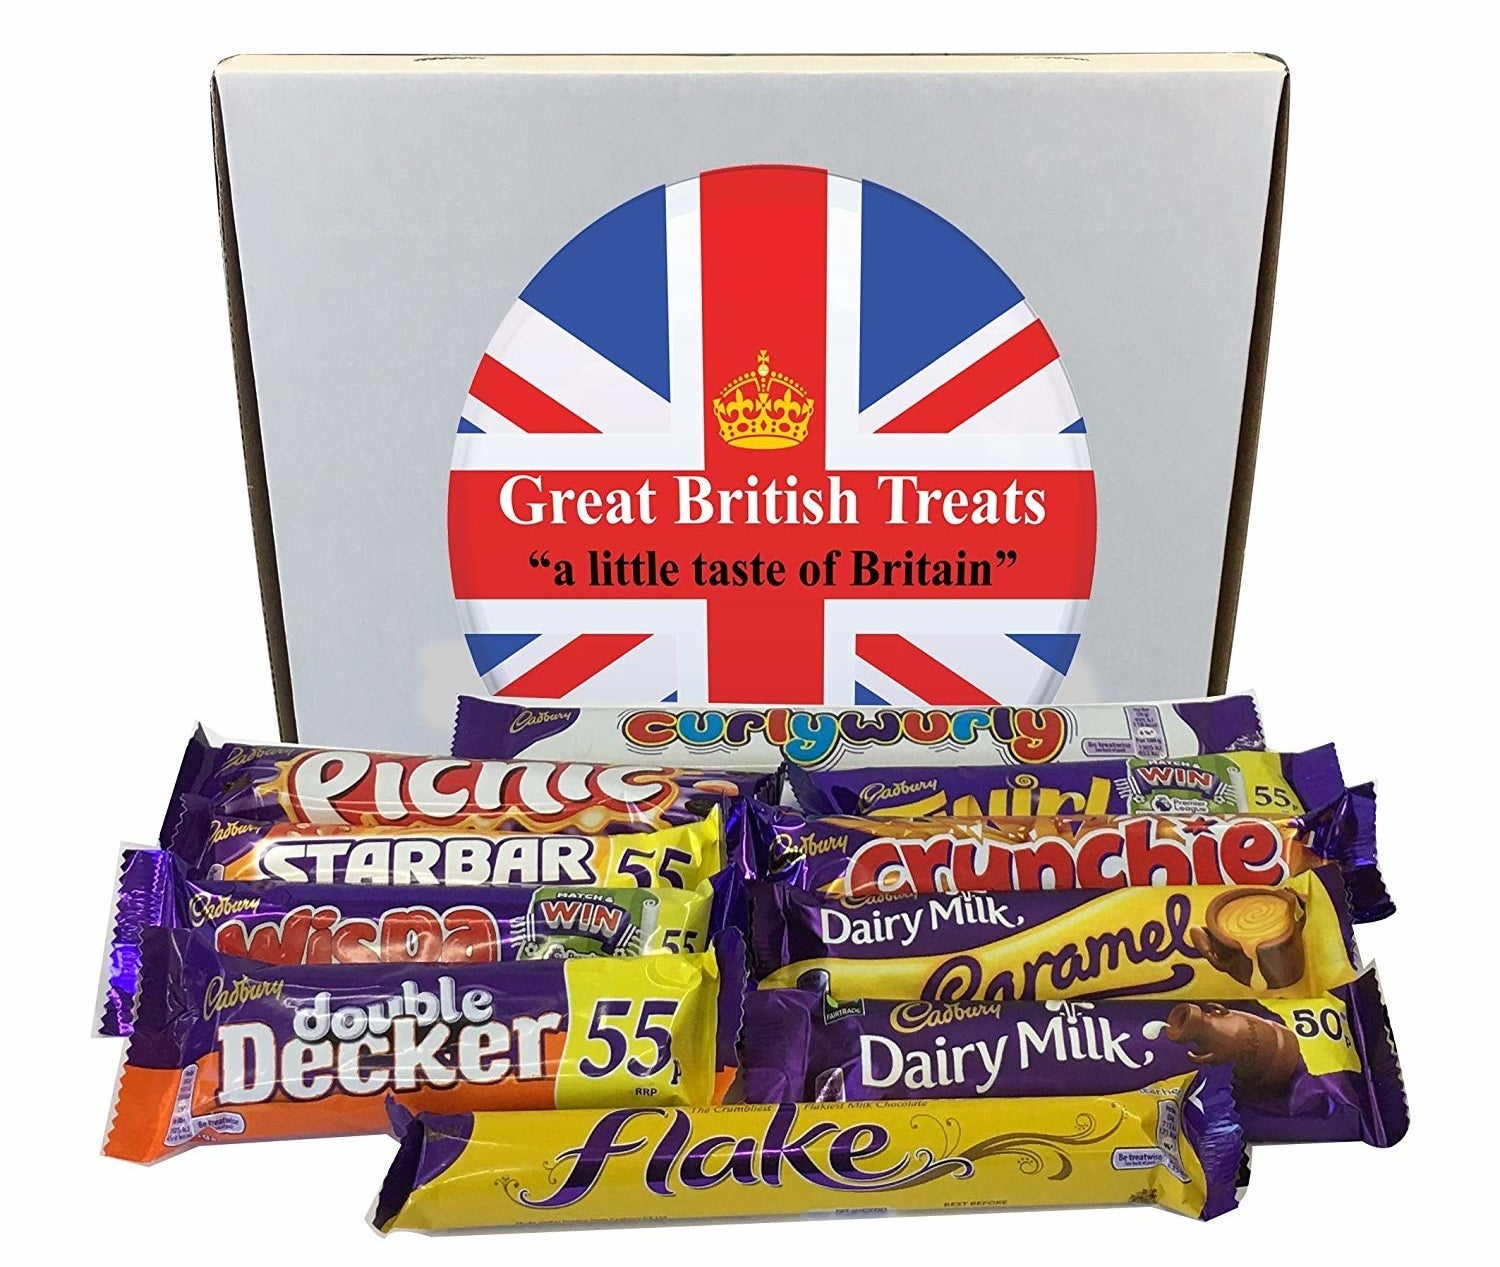 The box of British treats.